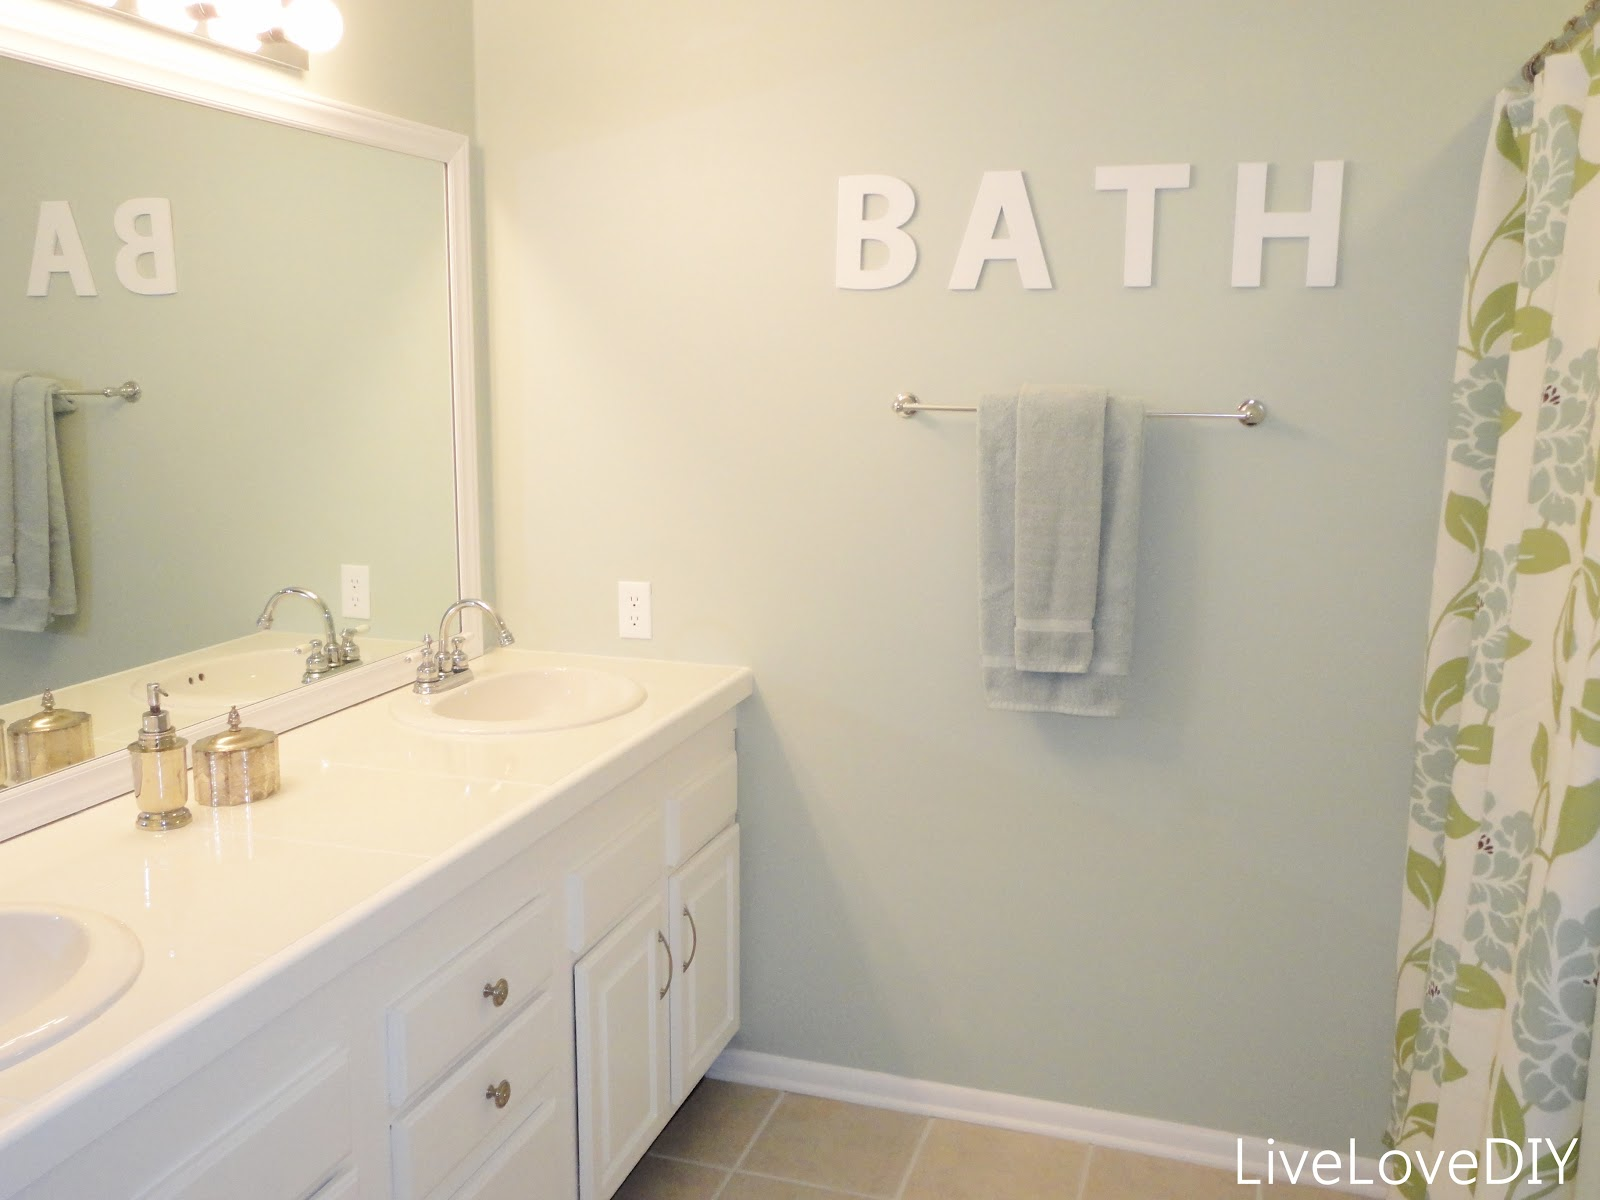 Livelovediy easy diy ideas for updating your bathroom easy diy ideas for updating older bathrooms so many great ideas including how to paint dailygadgetfo Images